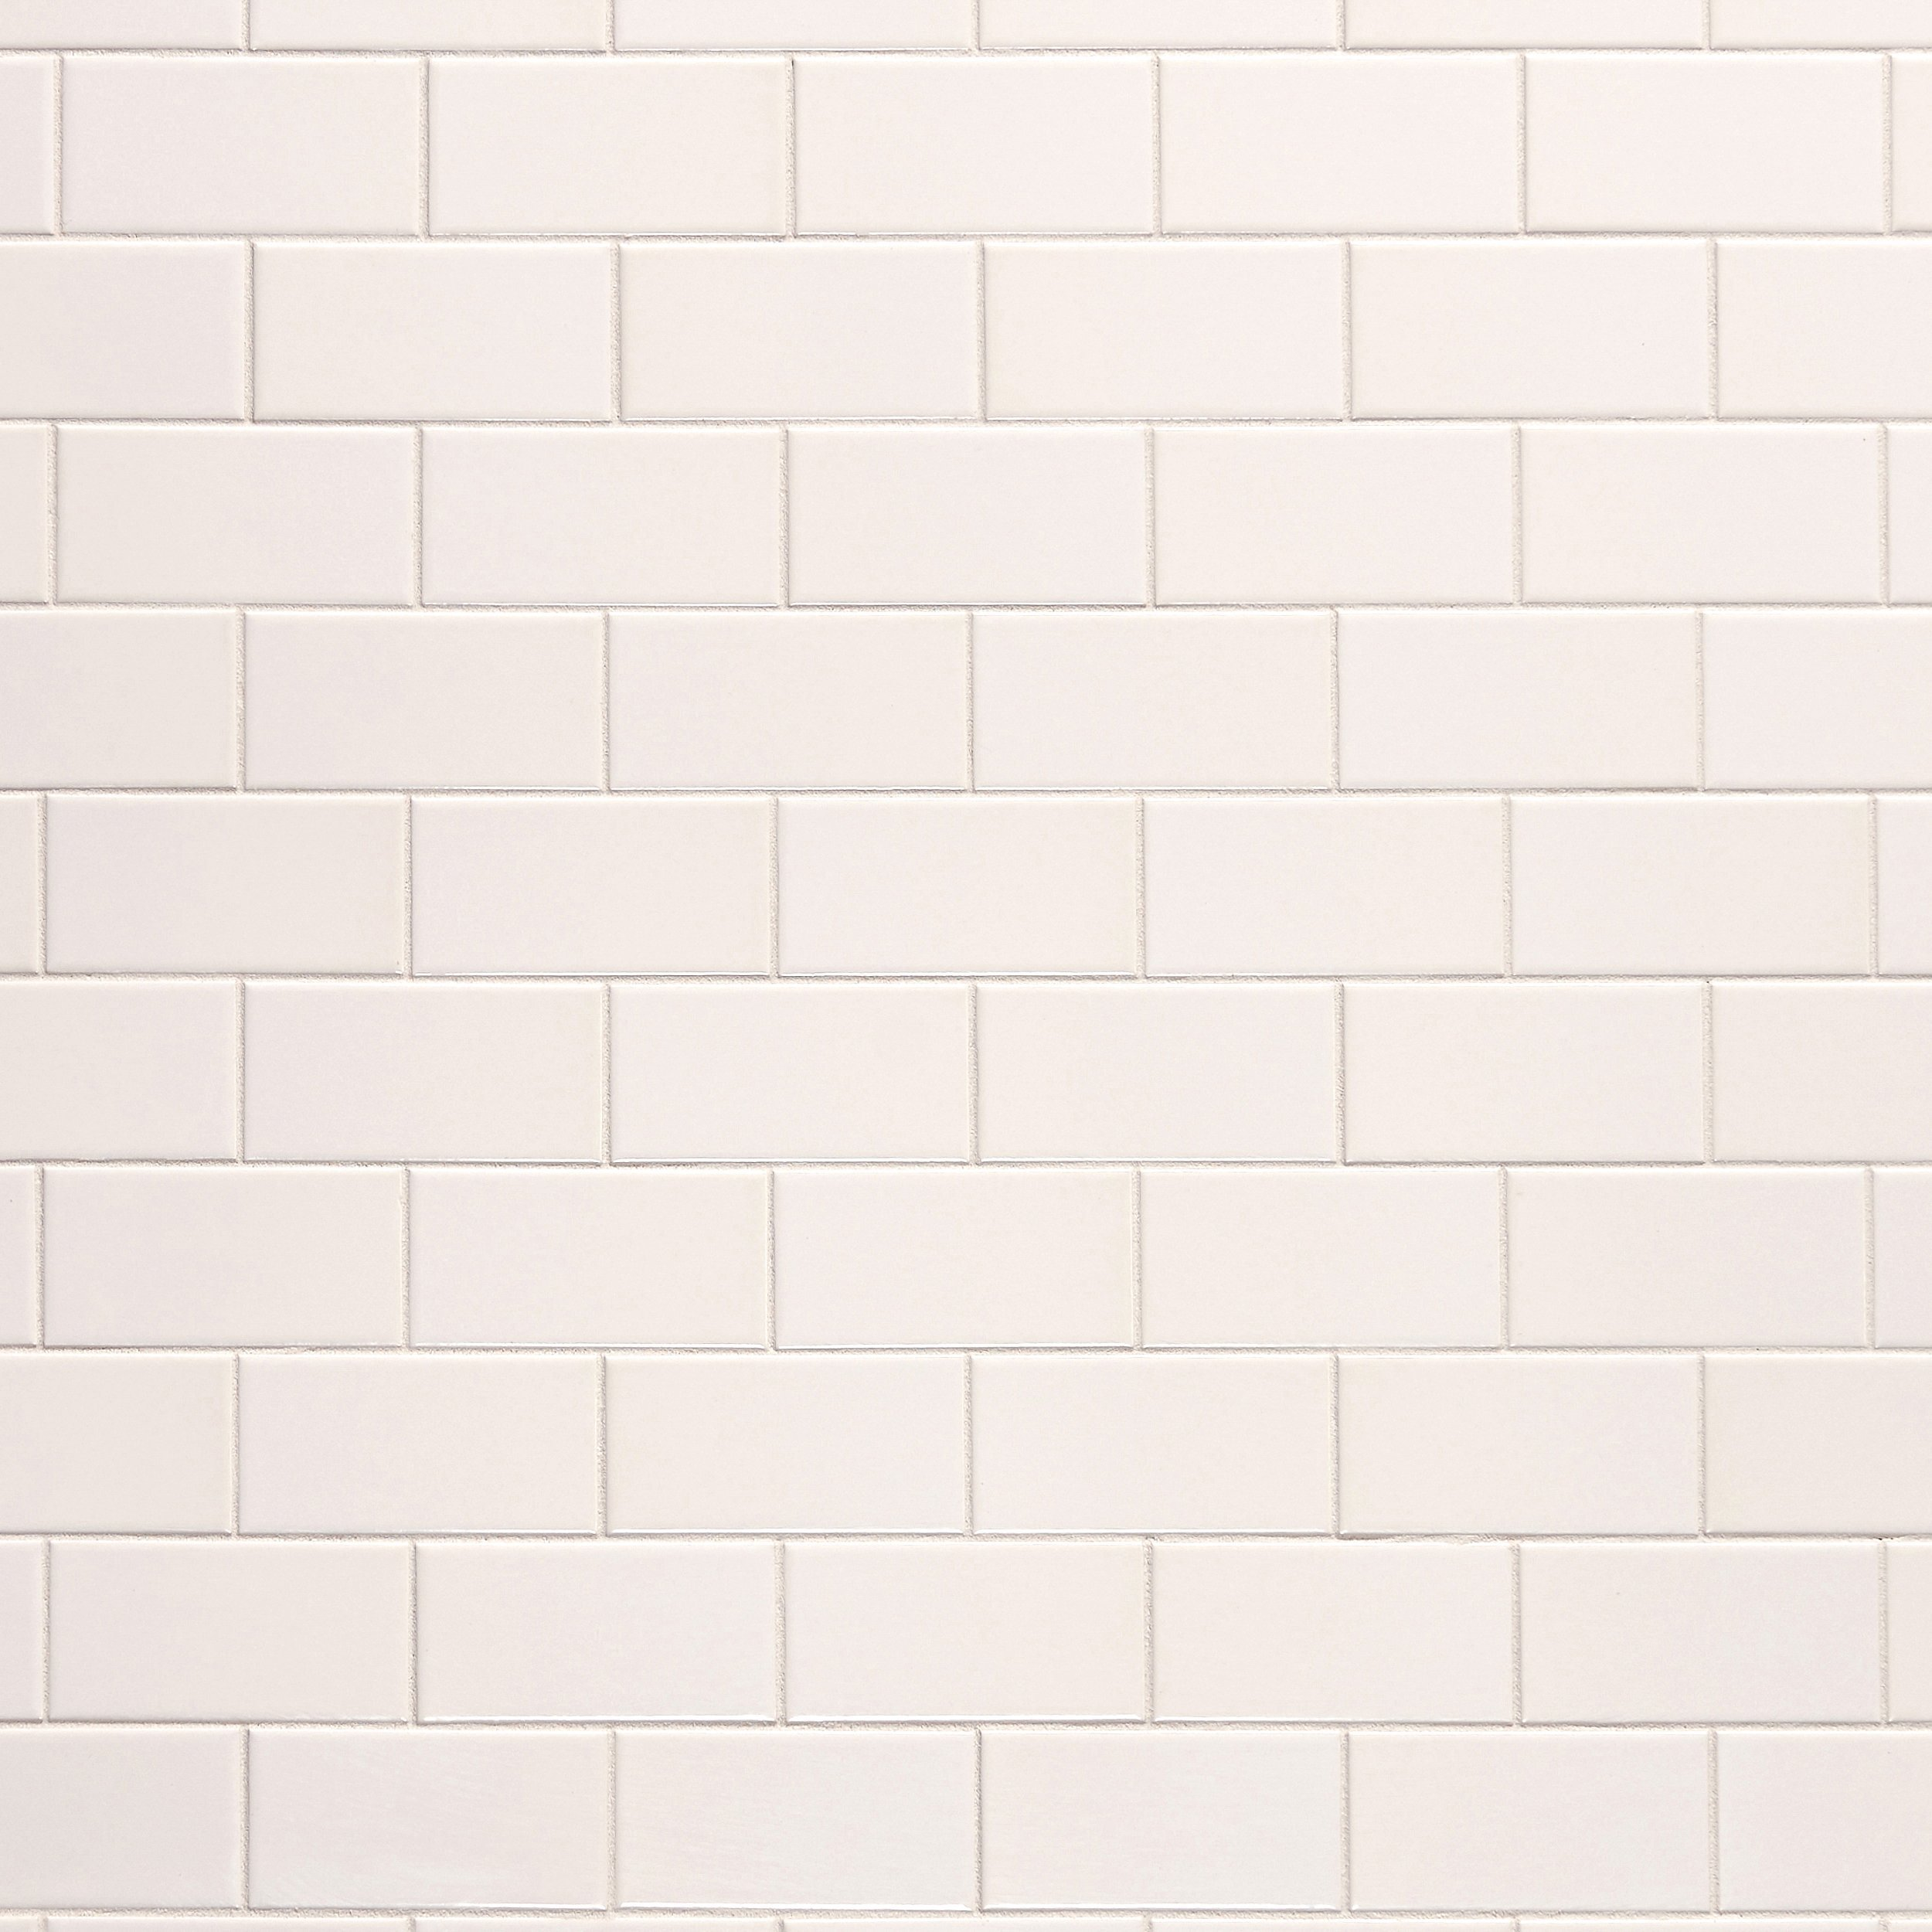 Bright White Ice Beveled Ceramic Wall Tile 3 X 6